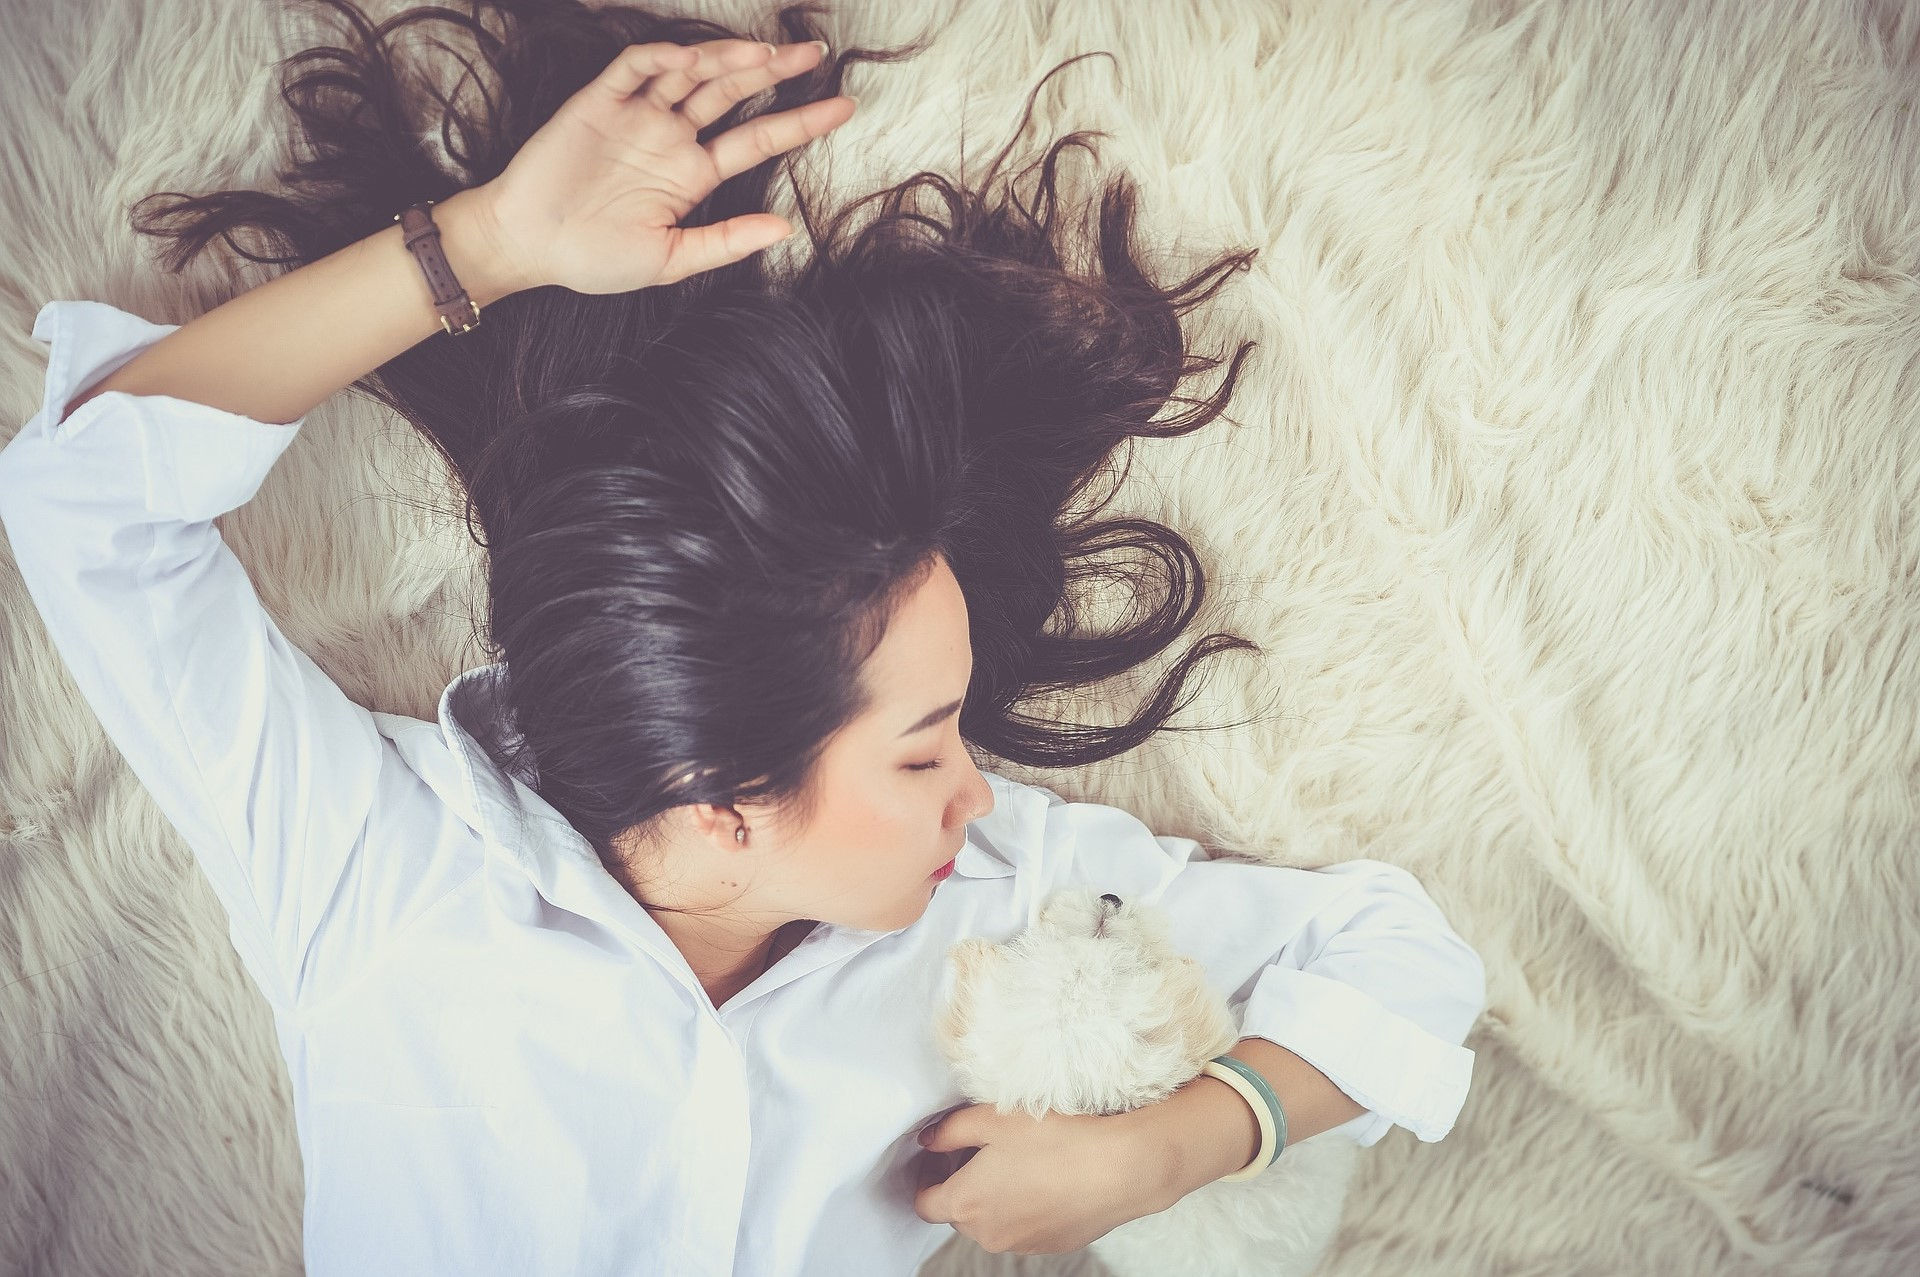 Girl wearing white shirt from boutique sleeping with puppy